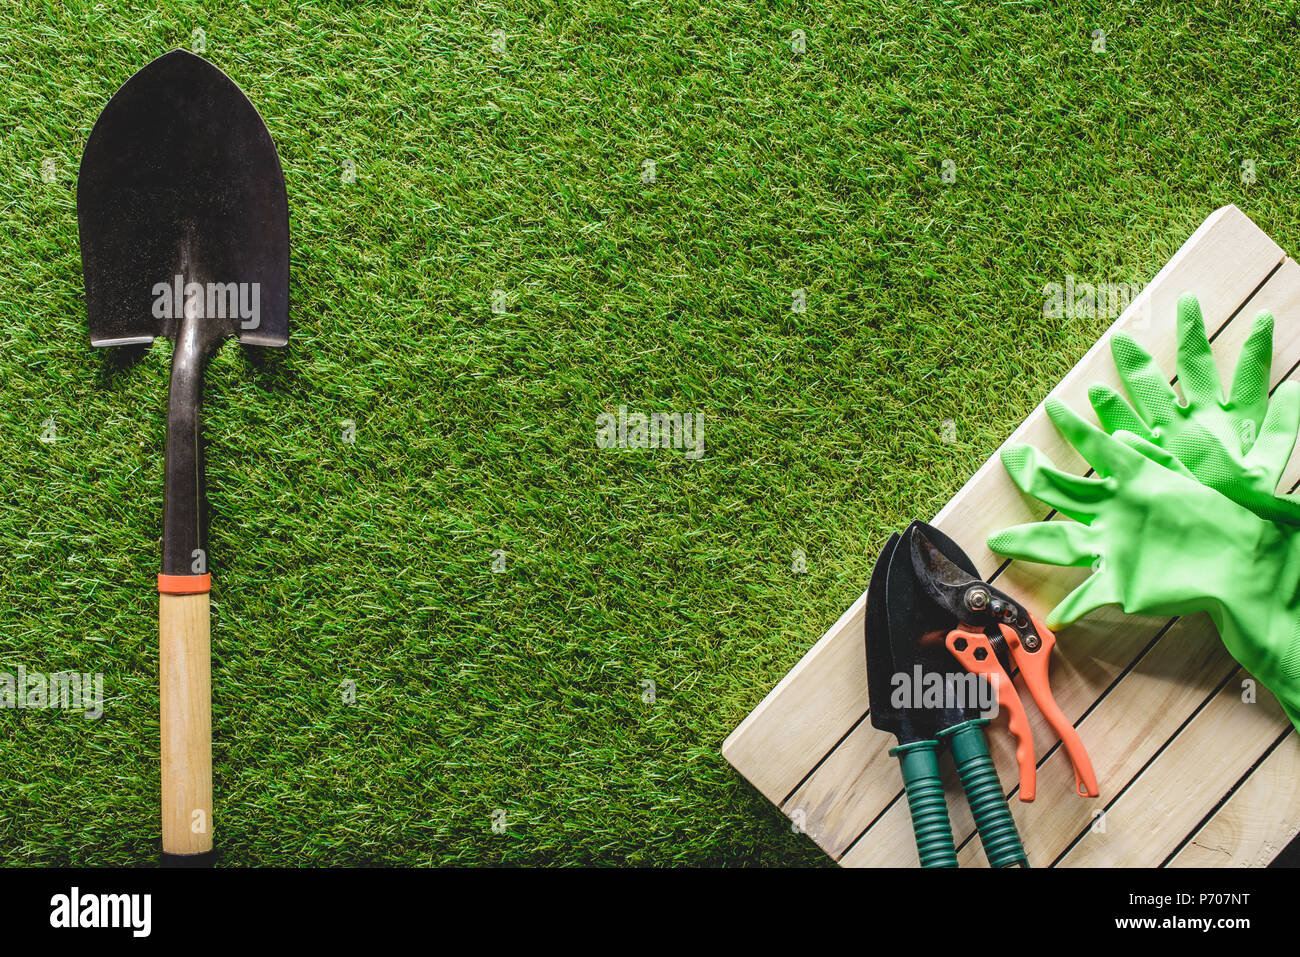 Top View Of Gardening Tools And Protective Gloves On Grass Stock